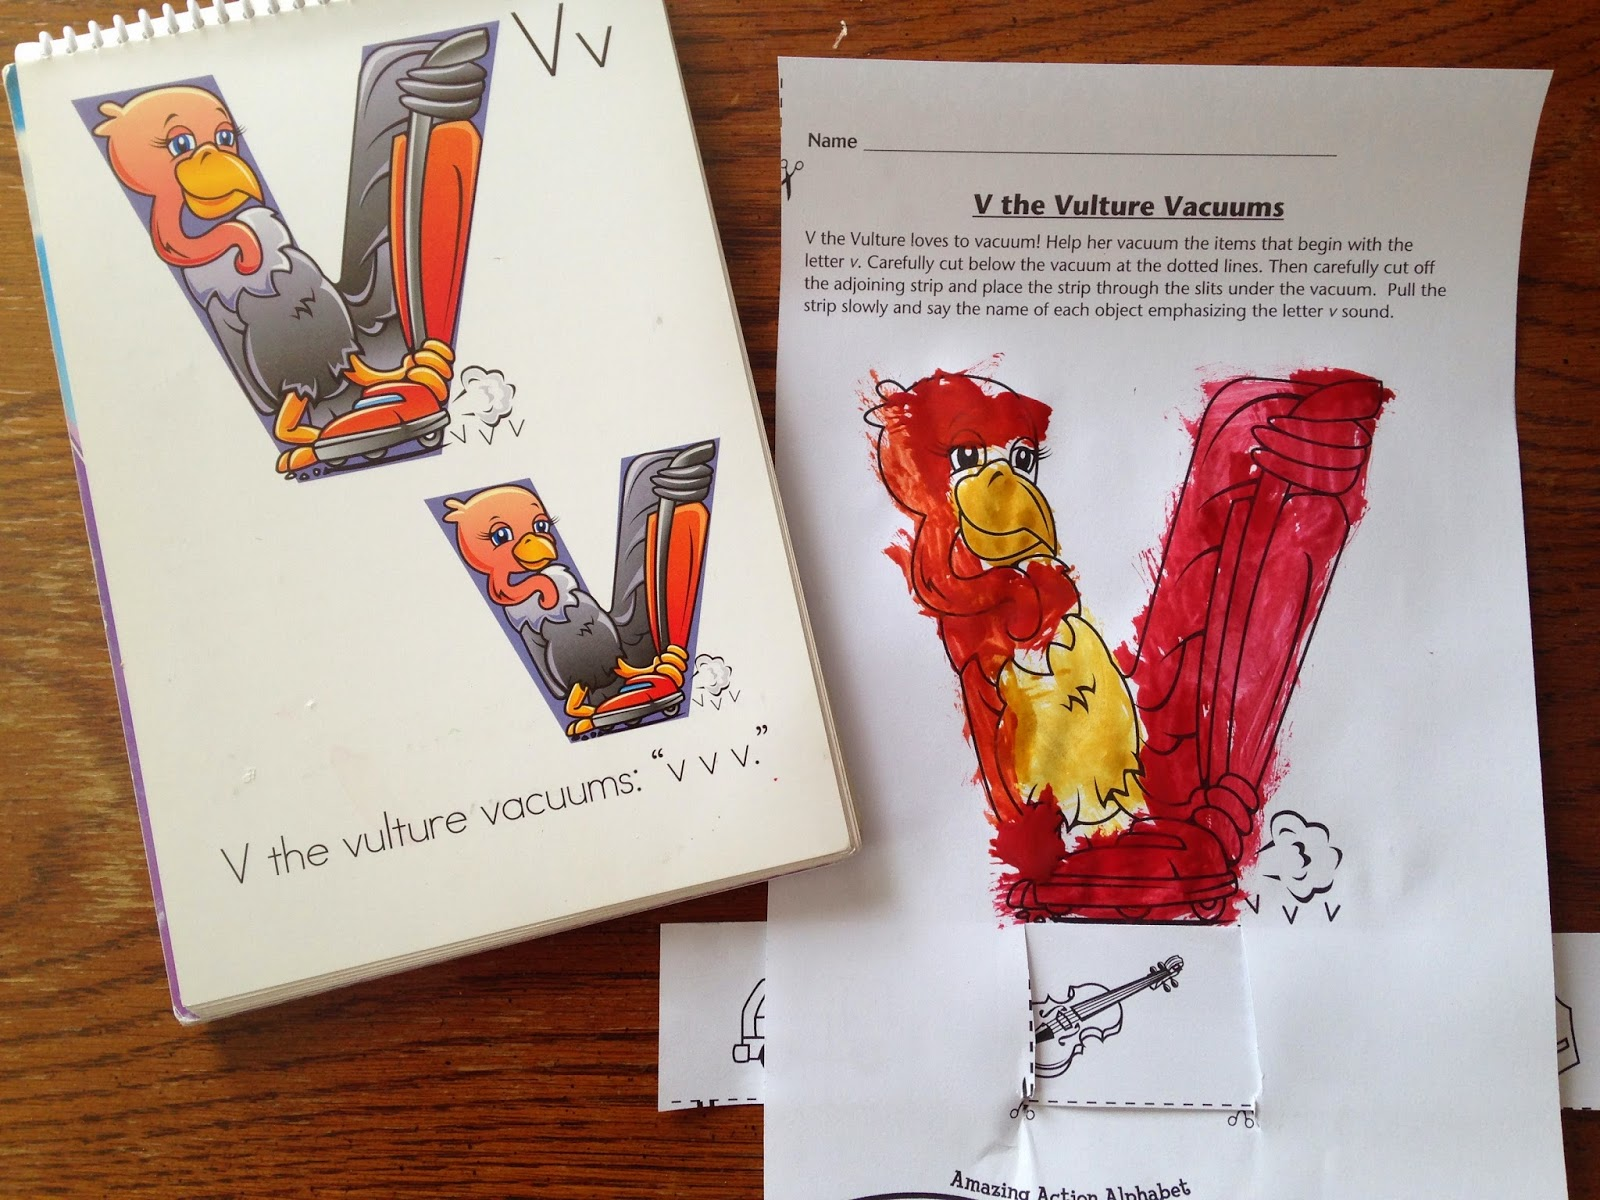 Amazing Action Alphabet Letter V The Vulture Vacuums With Preschoolers